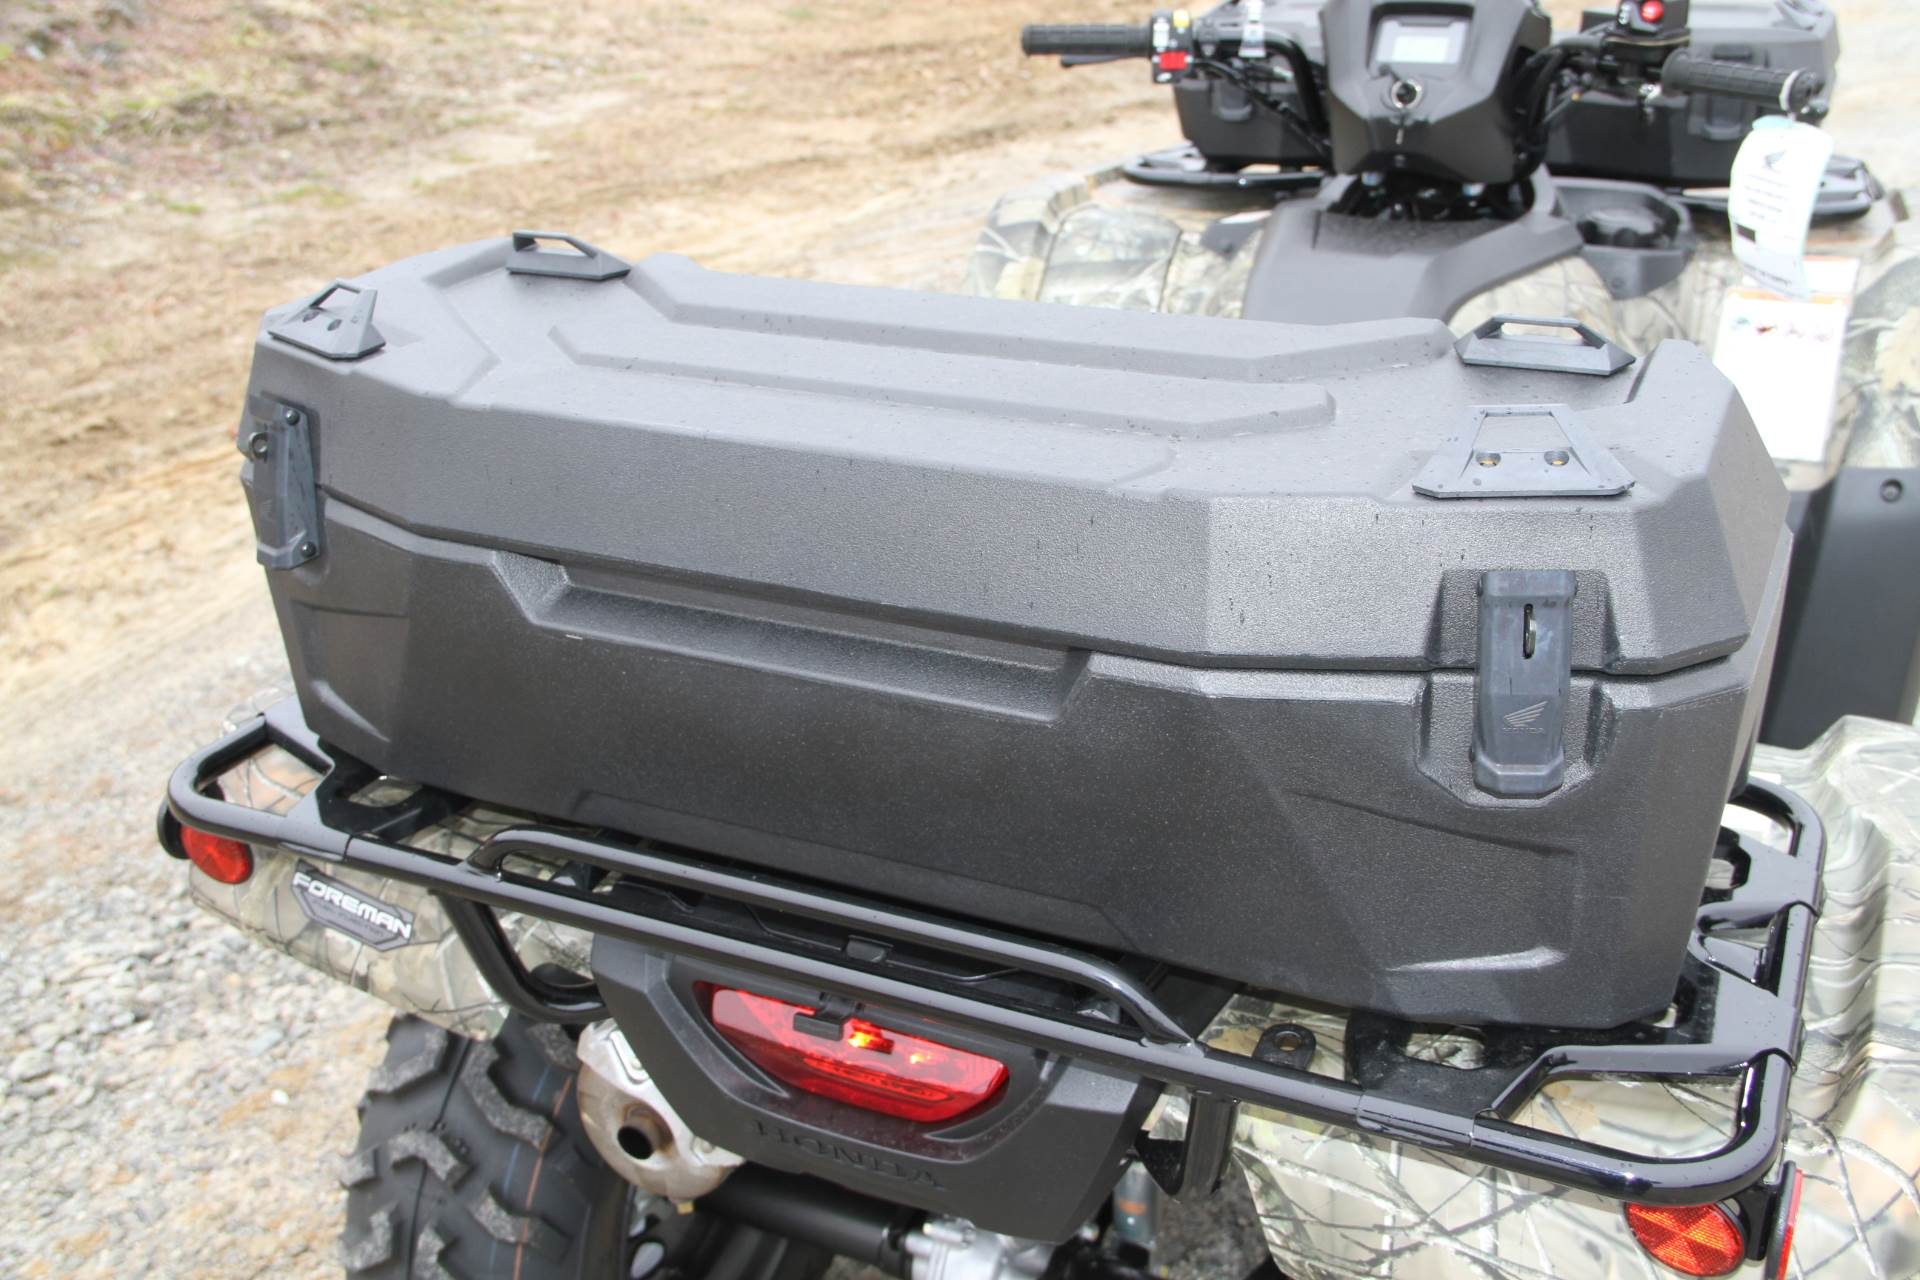 2020 Honda FourTrax Rancher 4x4 in Hendersonville, North Carolina - Photo 15